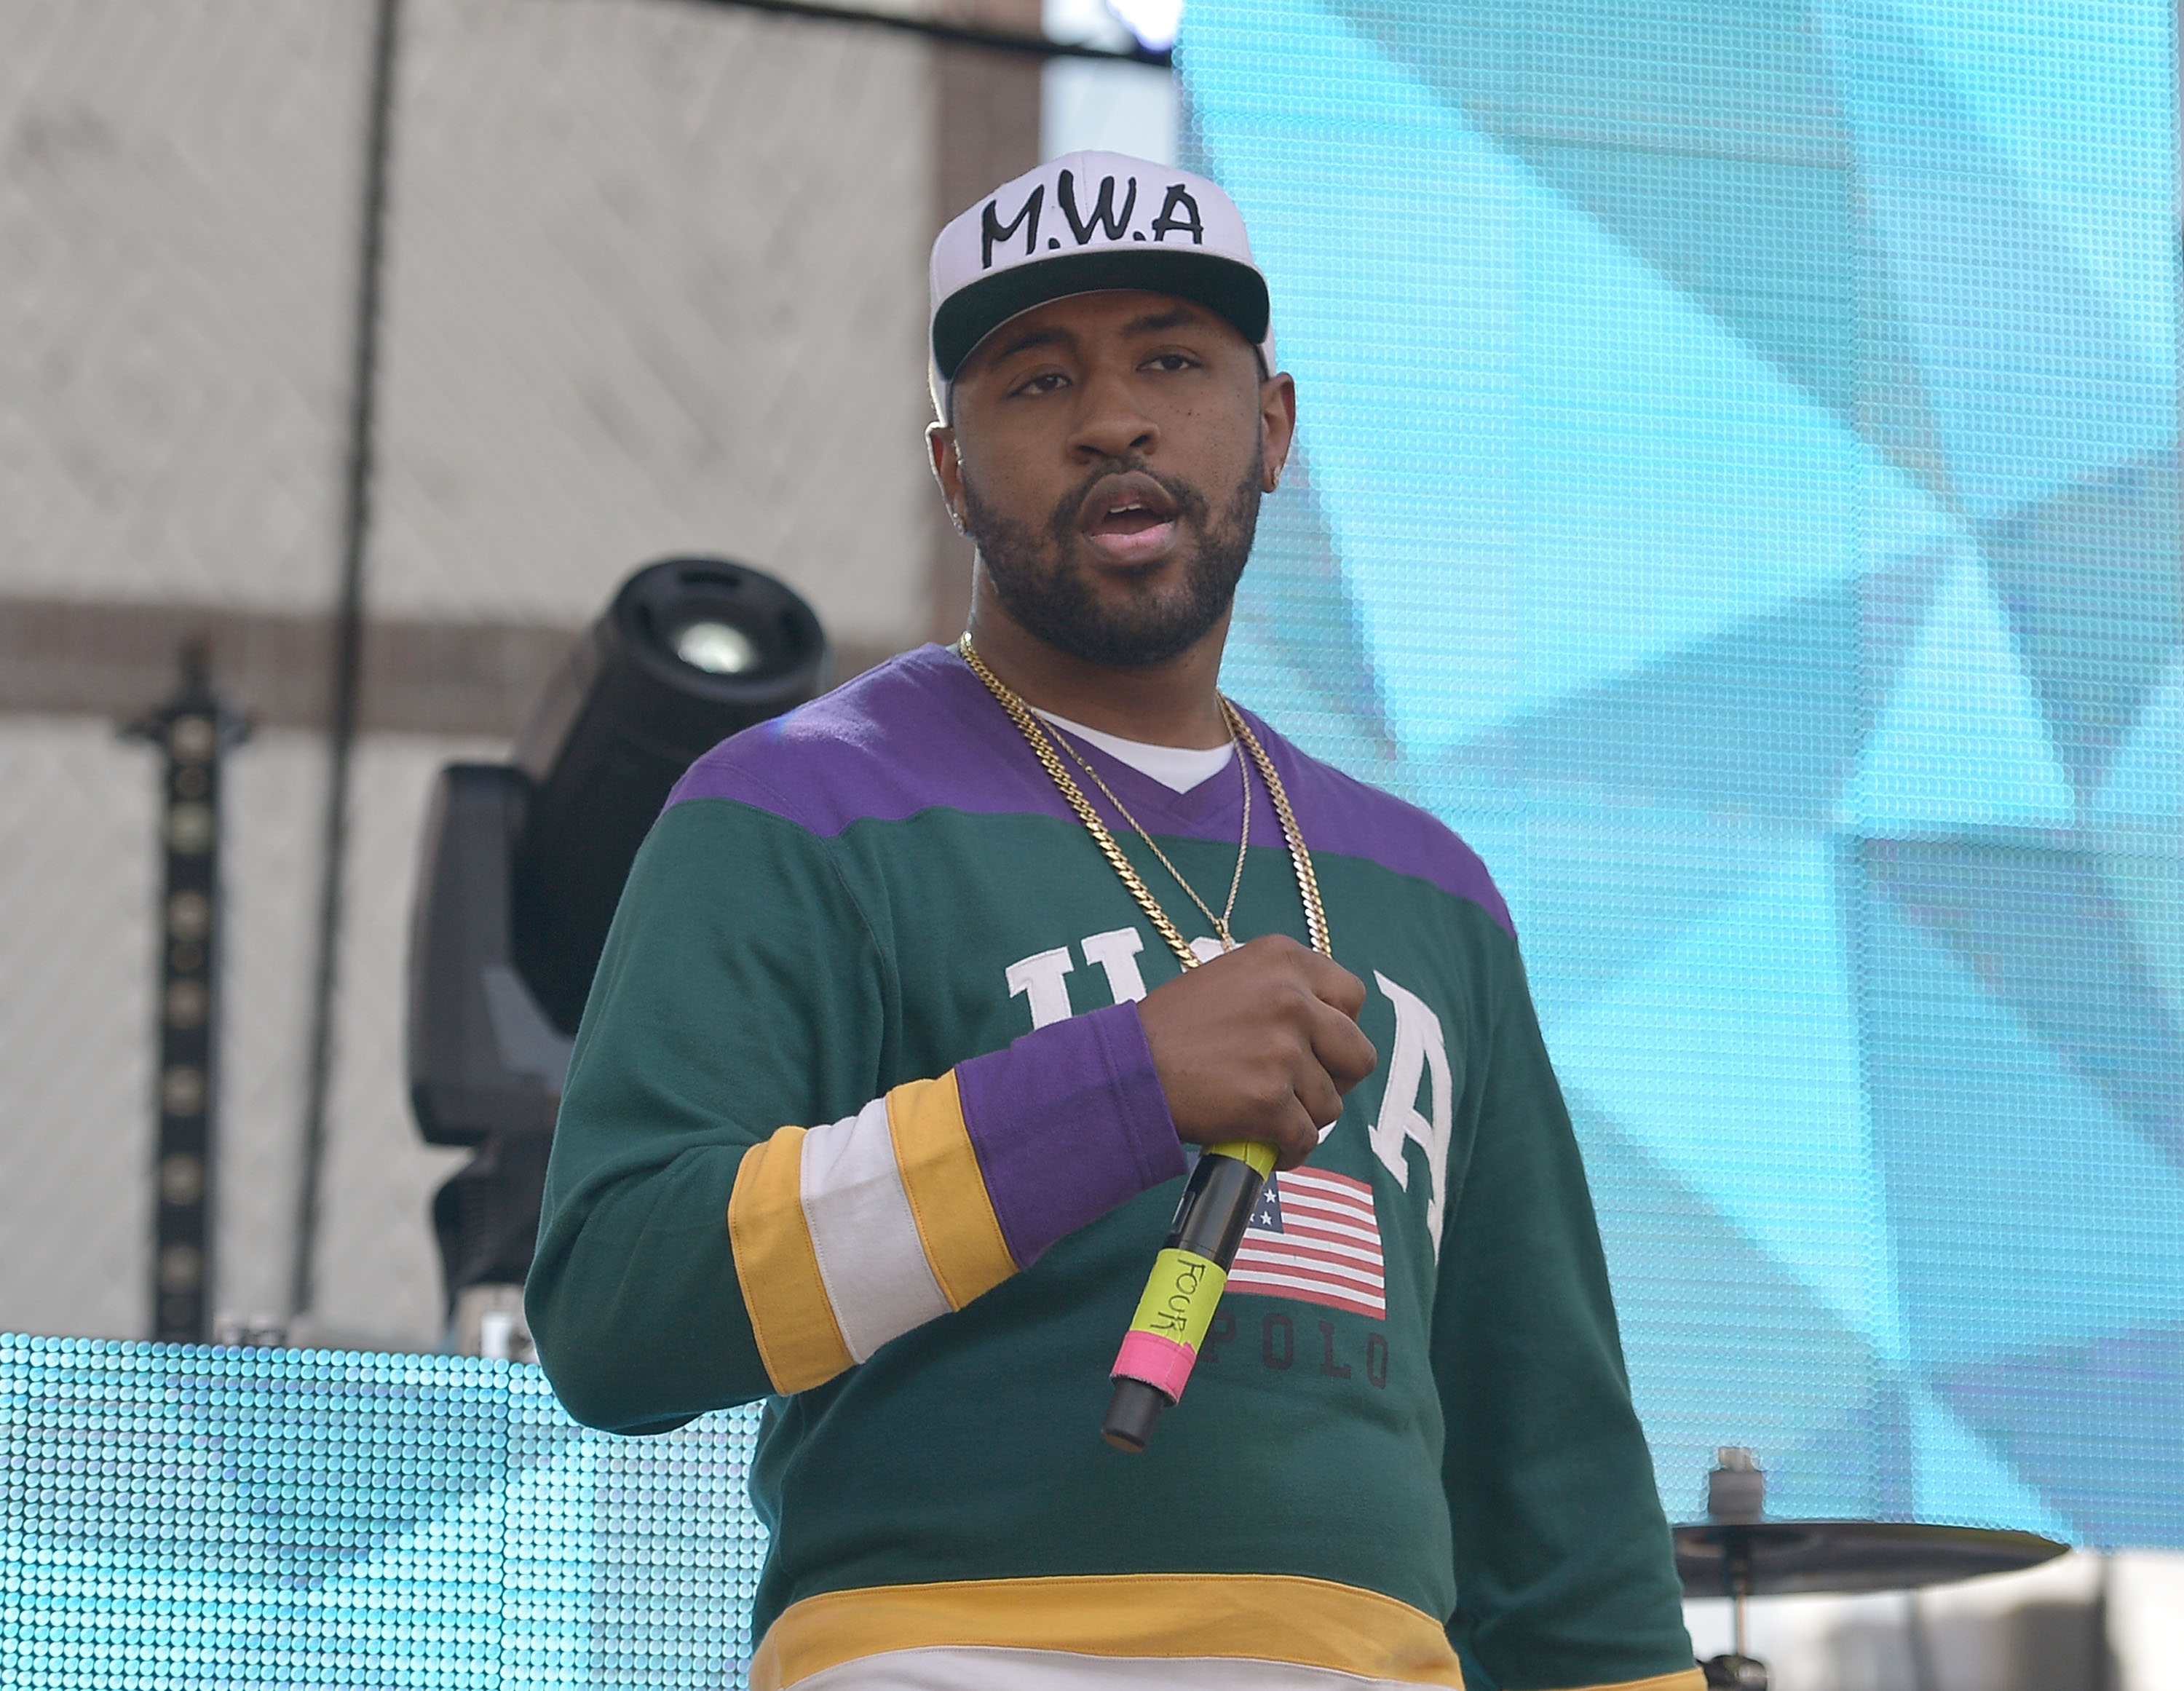 Mike Will Made It performs onstage at A3C Hip Hop Festival & Conference on October 11, 2015 in Atlanta, Georgia.